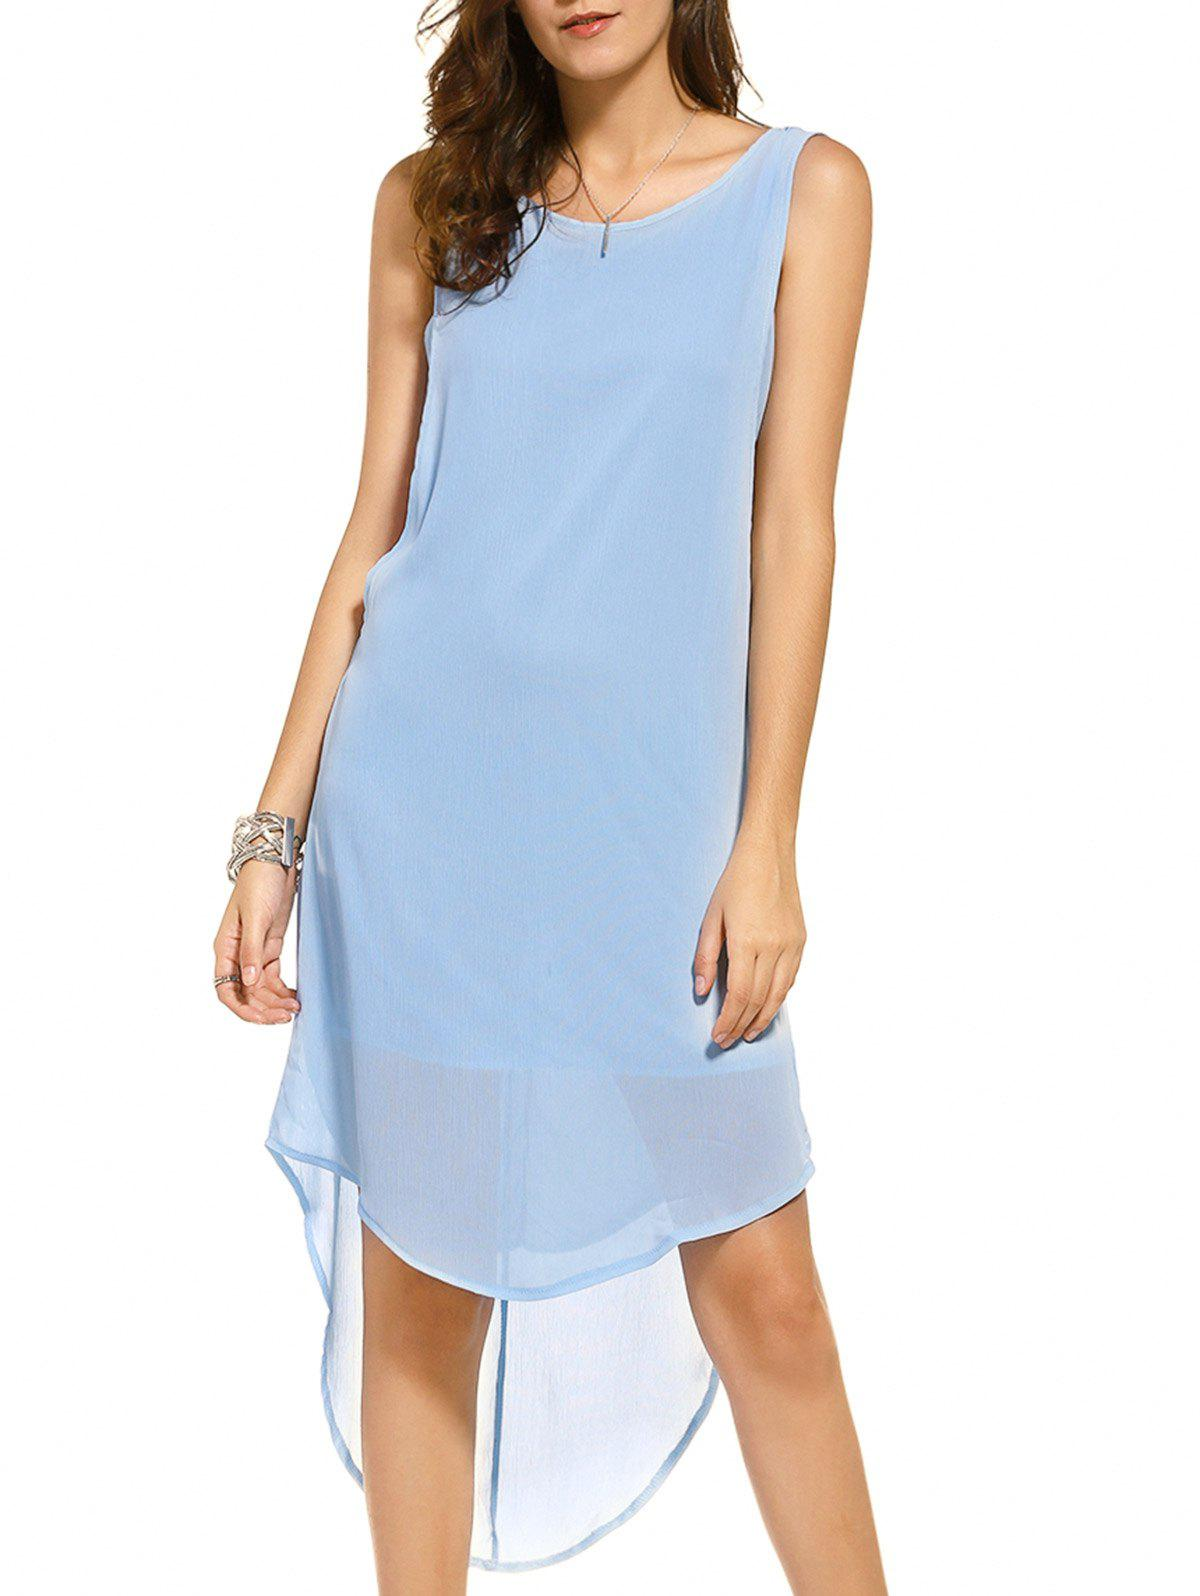 Casual Women's Scoop Neck Sleeveless High Low Backless Dress - ICE BLUE M